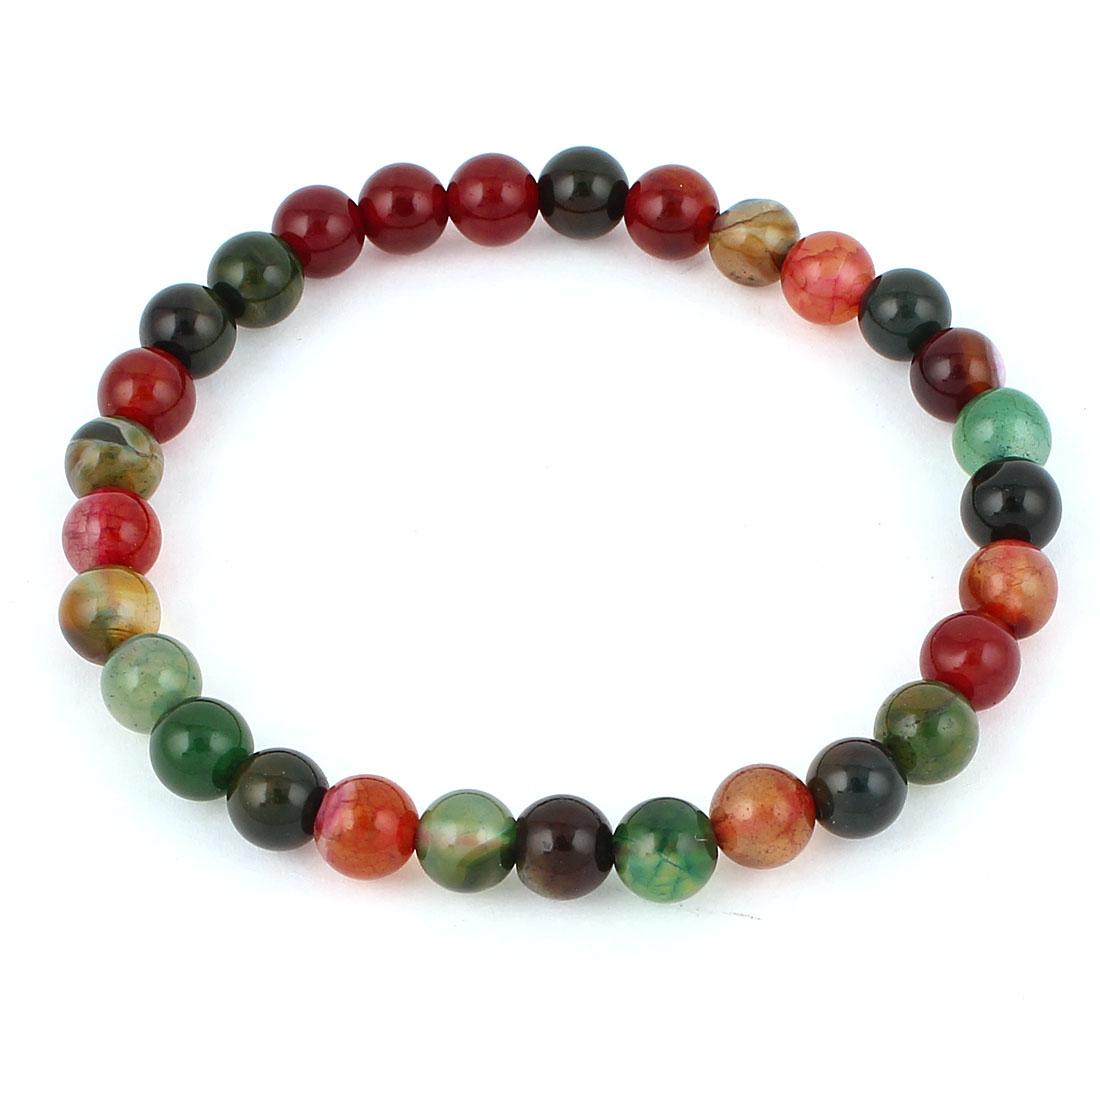 Lady Jewelry Faux Jade Beads Decor Elastic Wrist Bangle Bracelet Multicolor